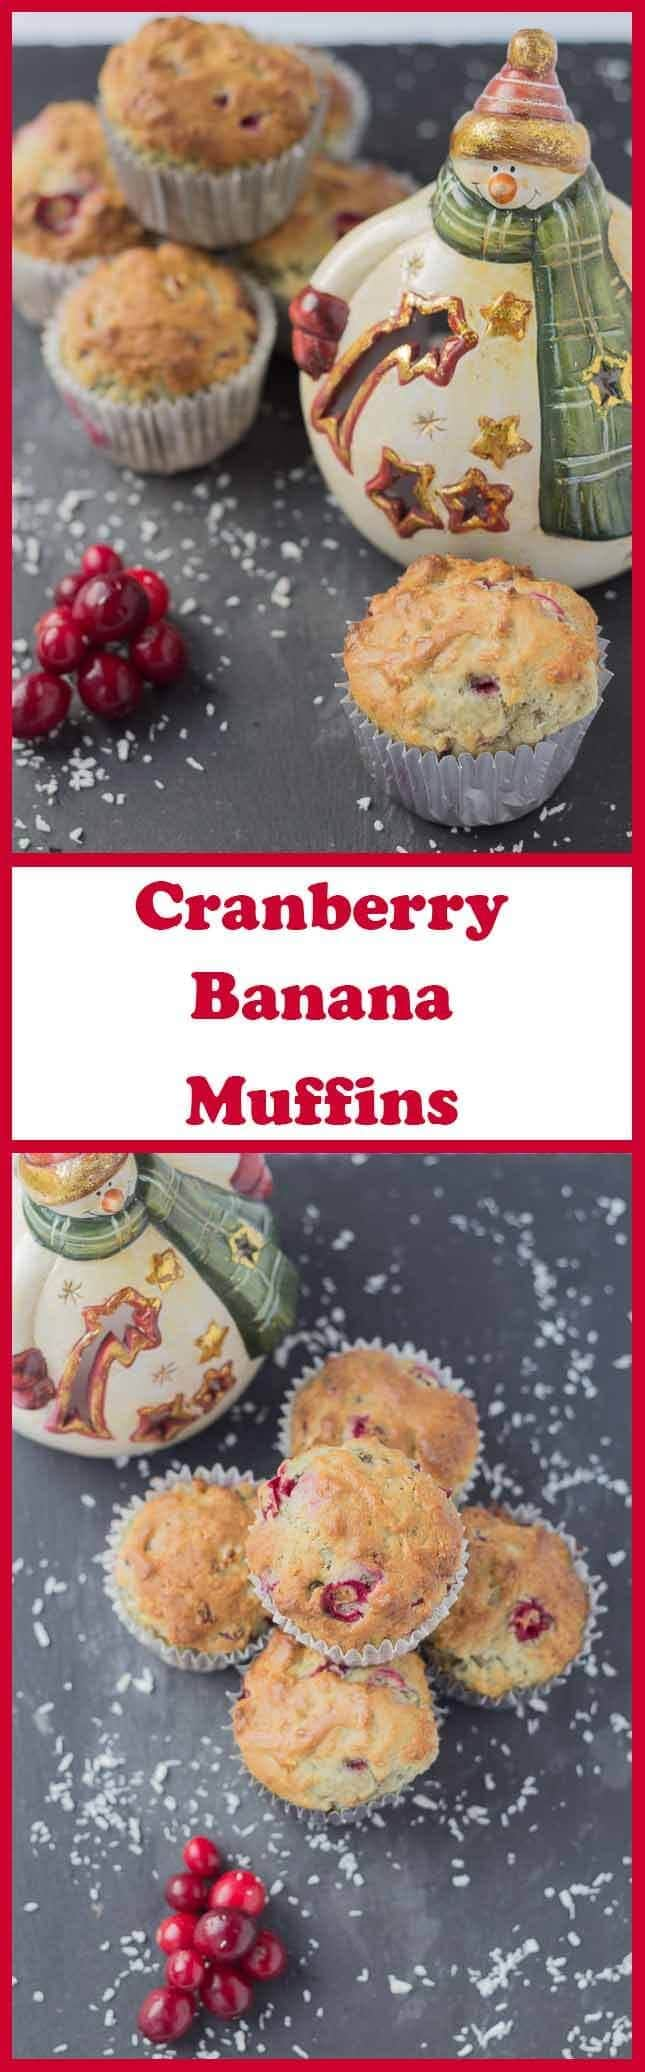 These cranberry banana muffins are not only delicious but they're low in fat and low calorie too! Perfect as a snack or as a grab and go healthy breakfast they take just 20 minutes to prepare and 20 minutes to bake.